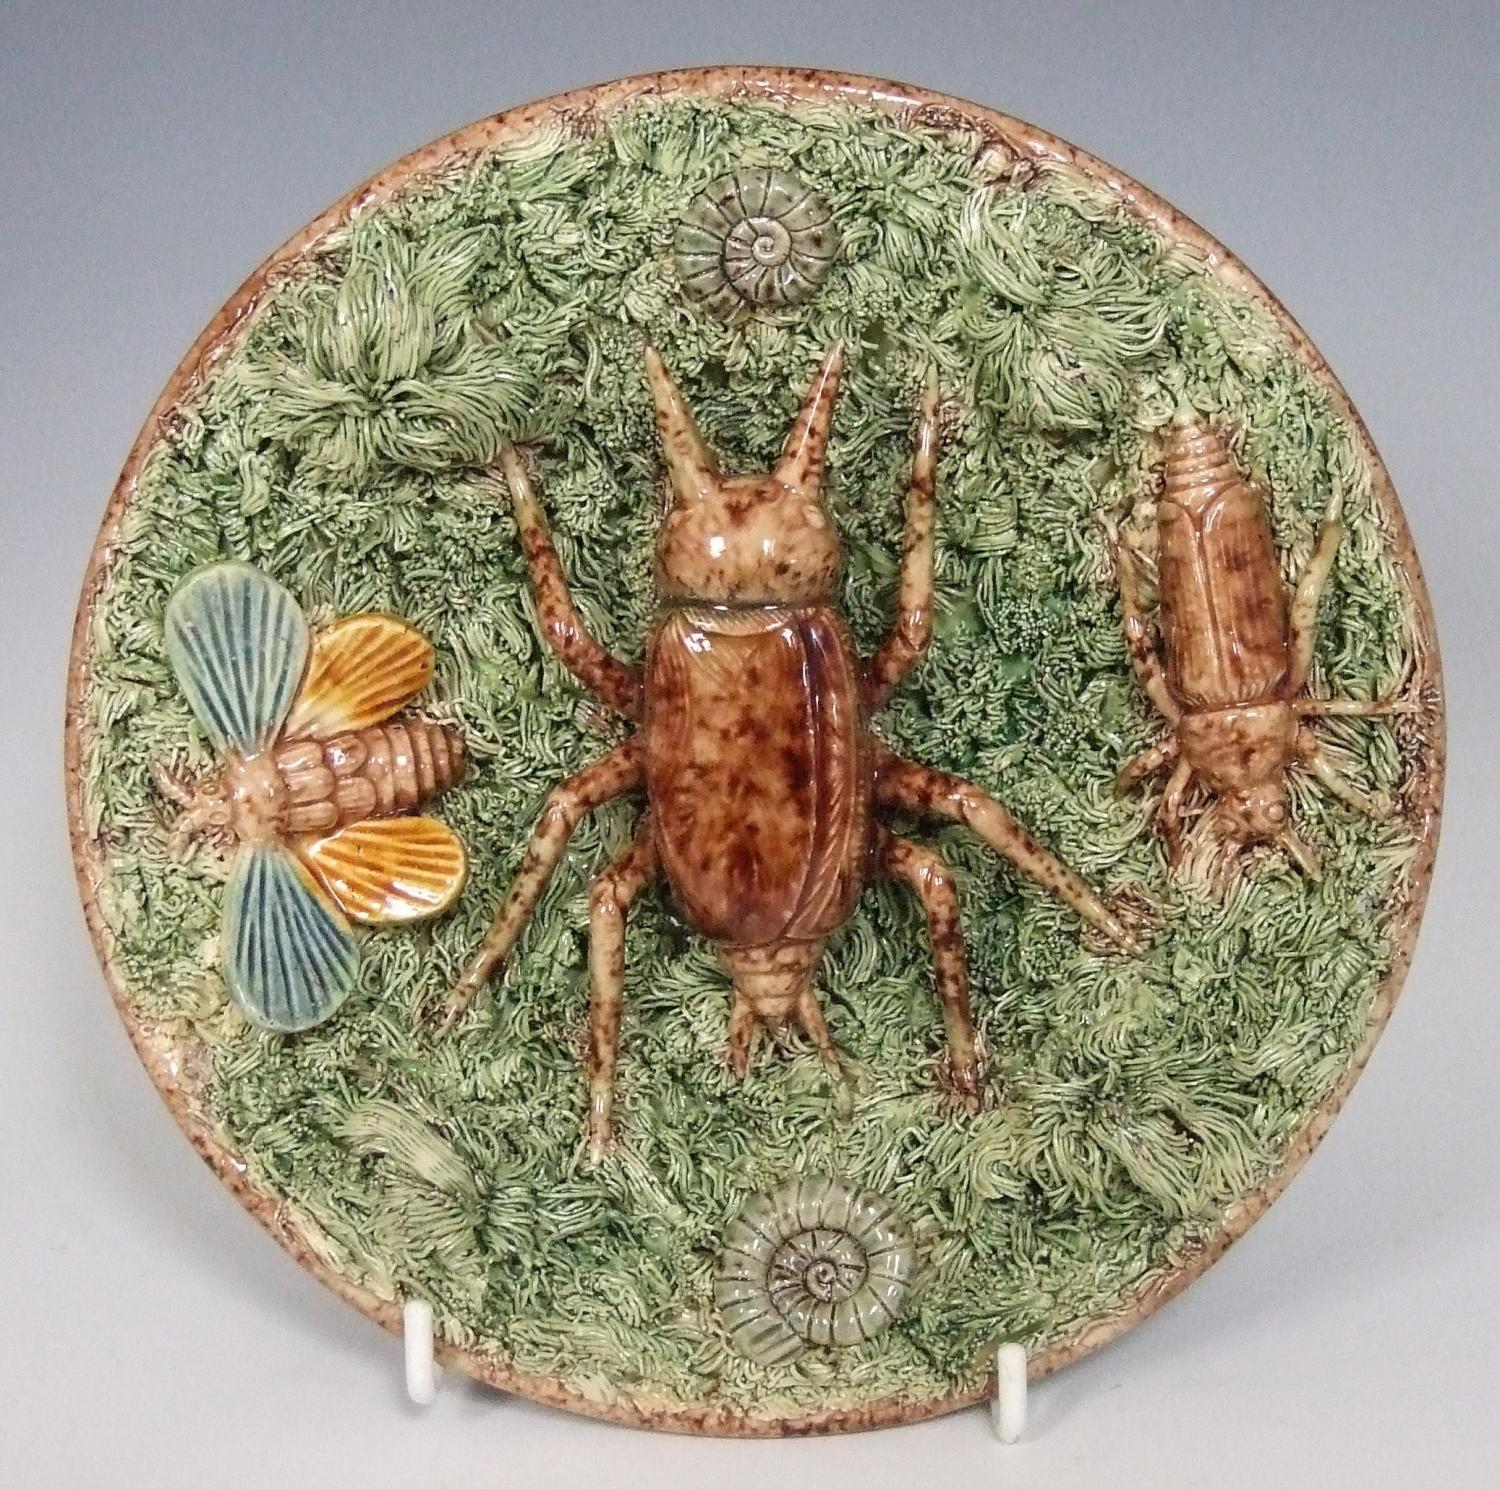 Rare Portuguese Palissy insect motif plate